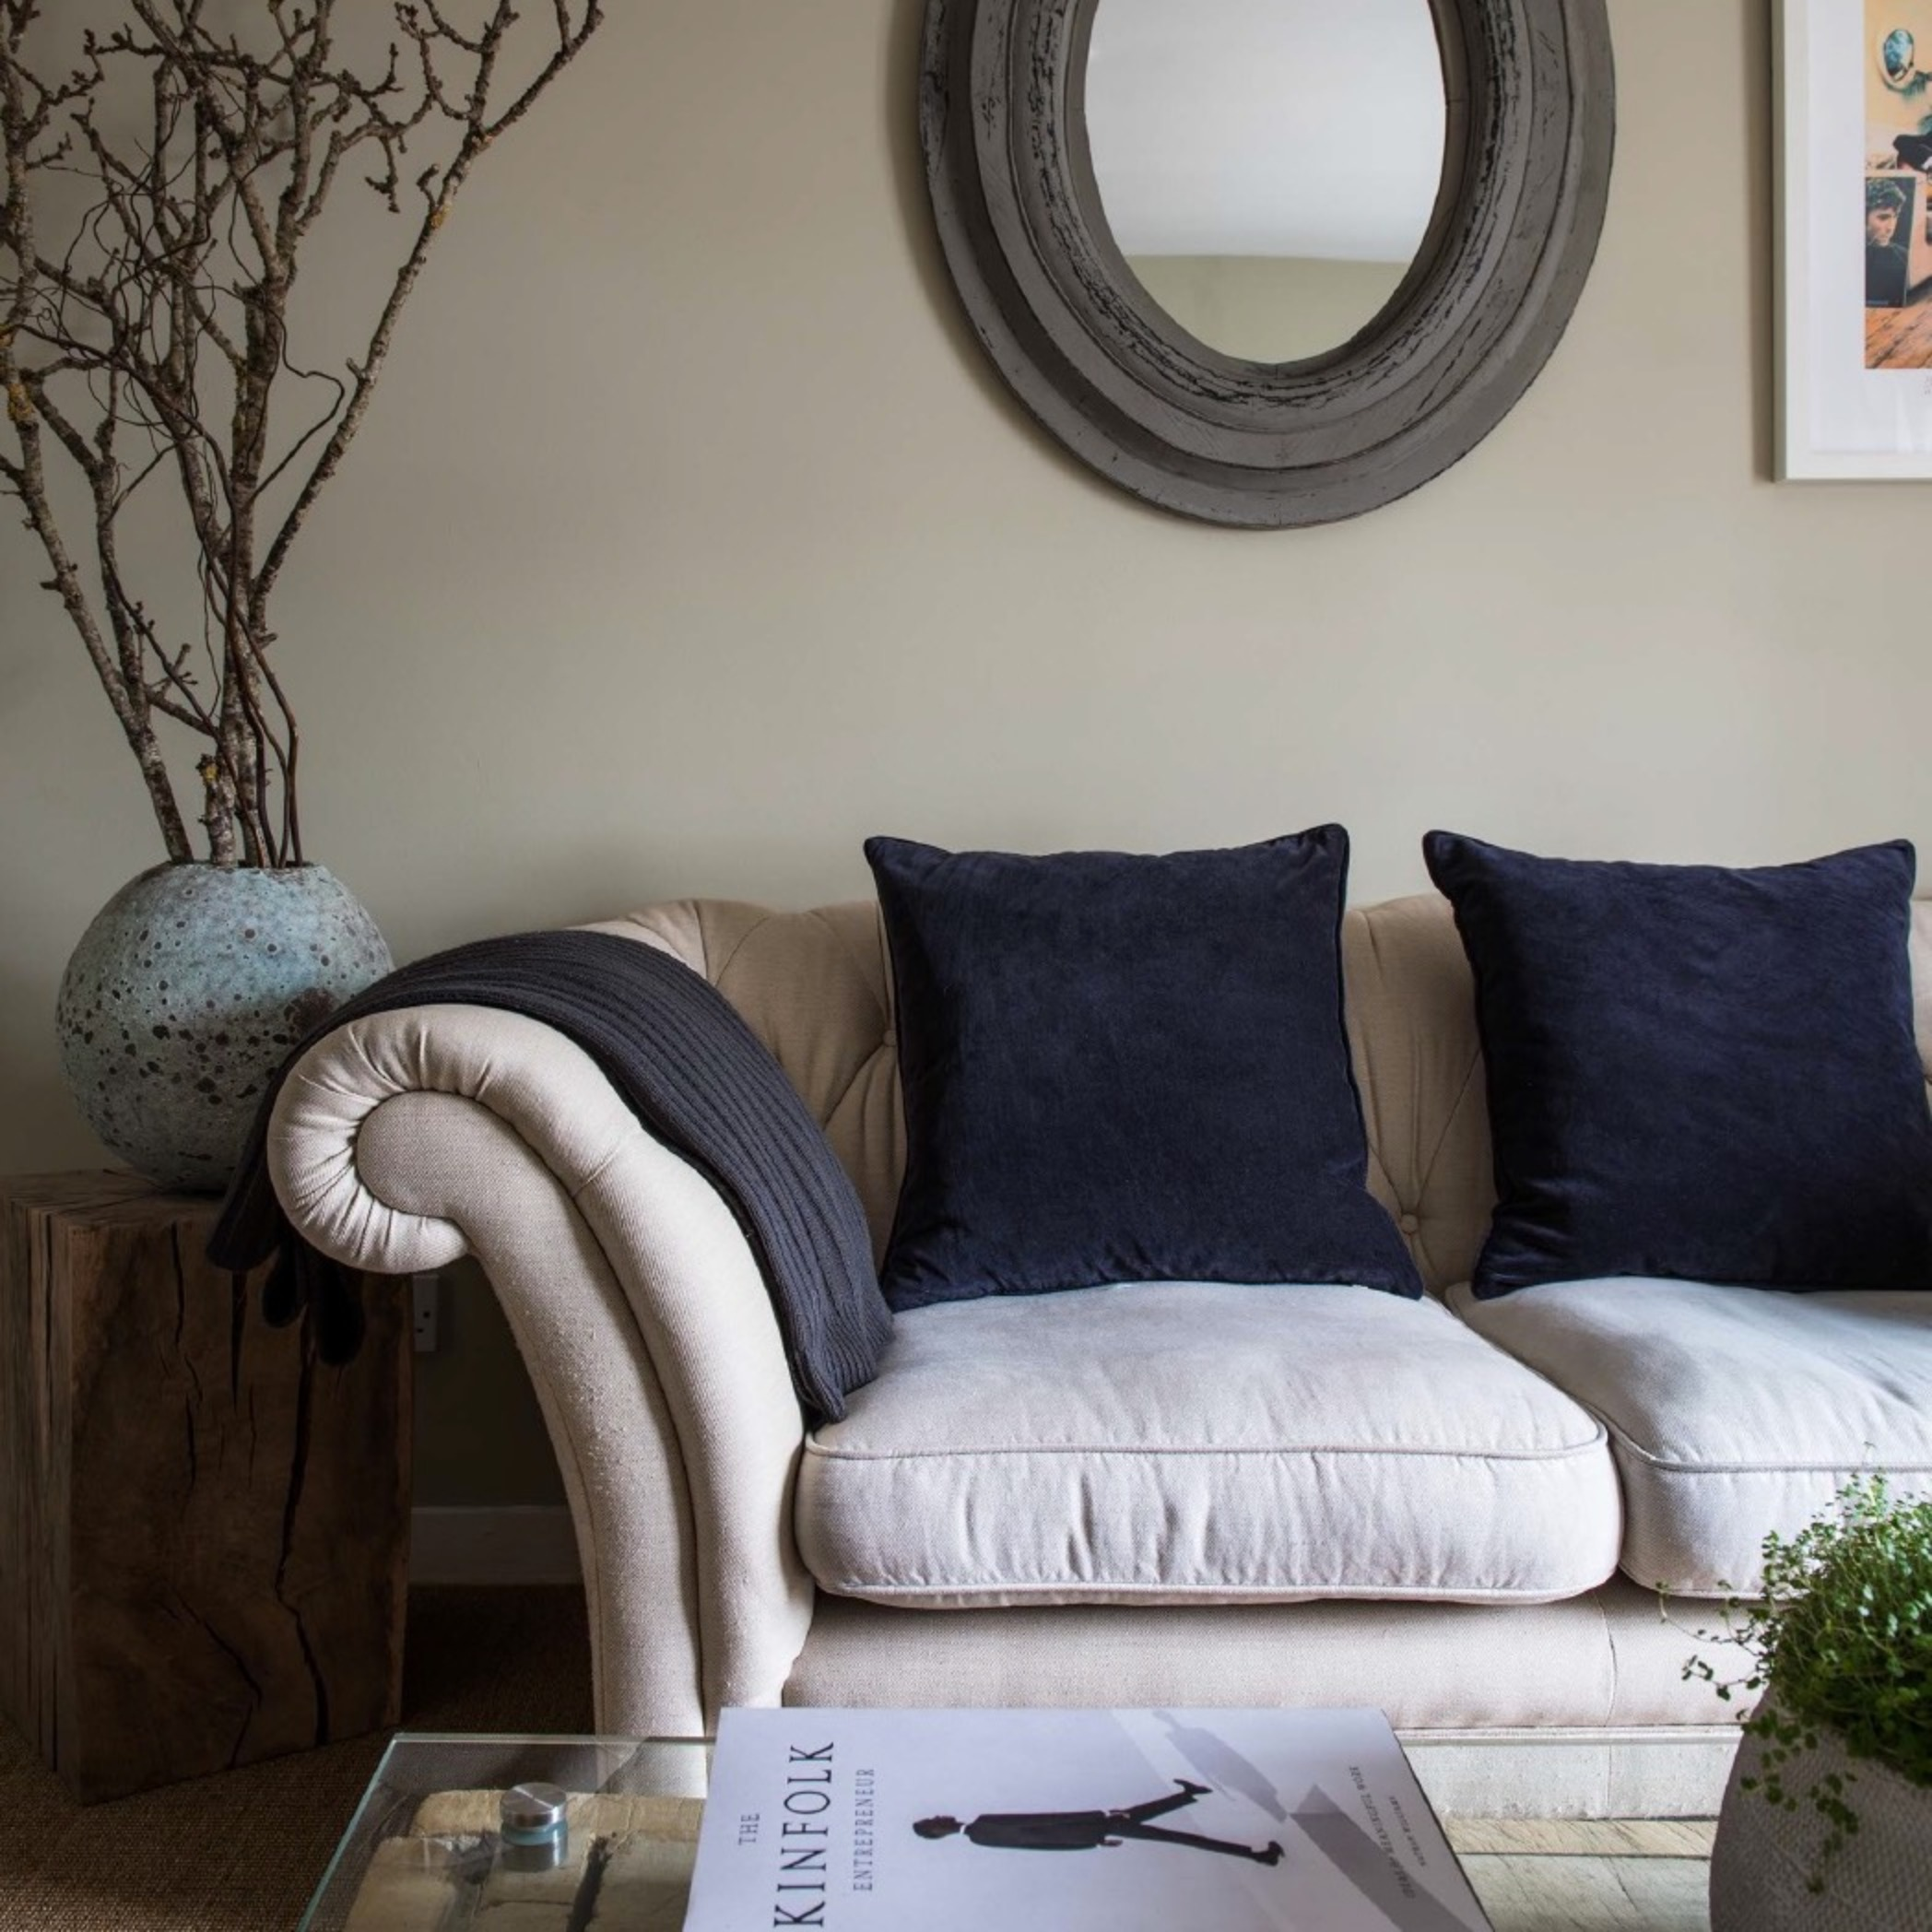 Interior design of lounge living room with sofa, mirror and bespoke table